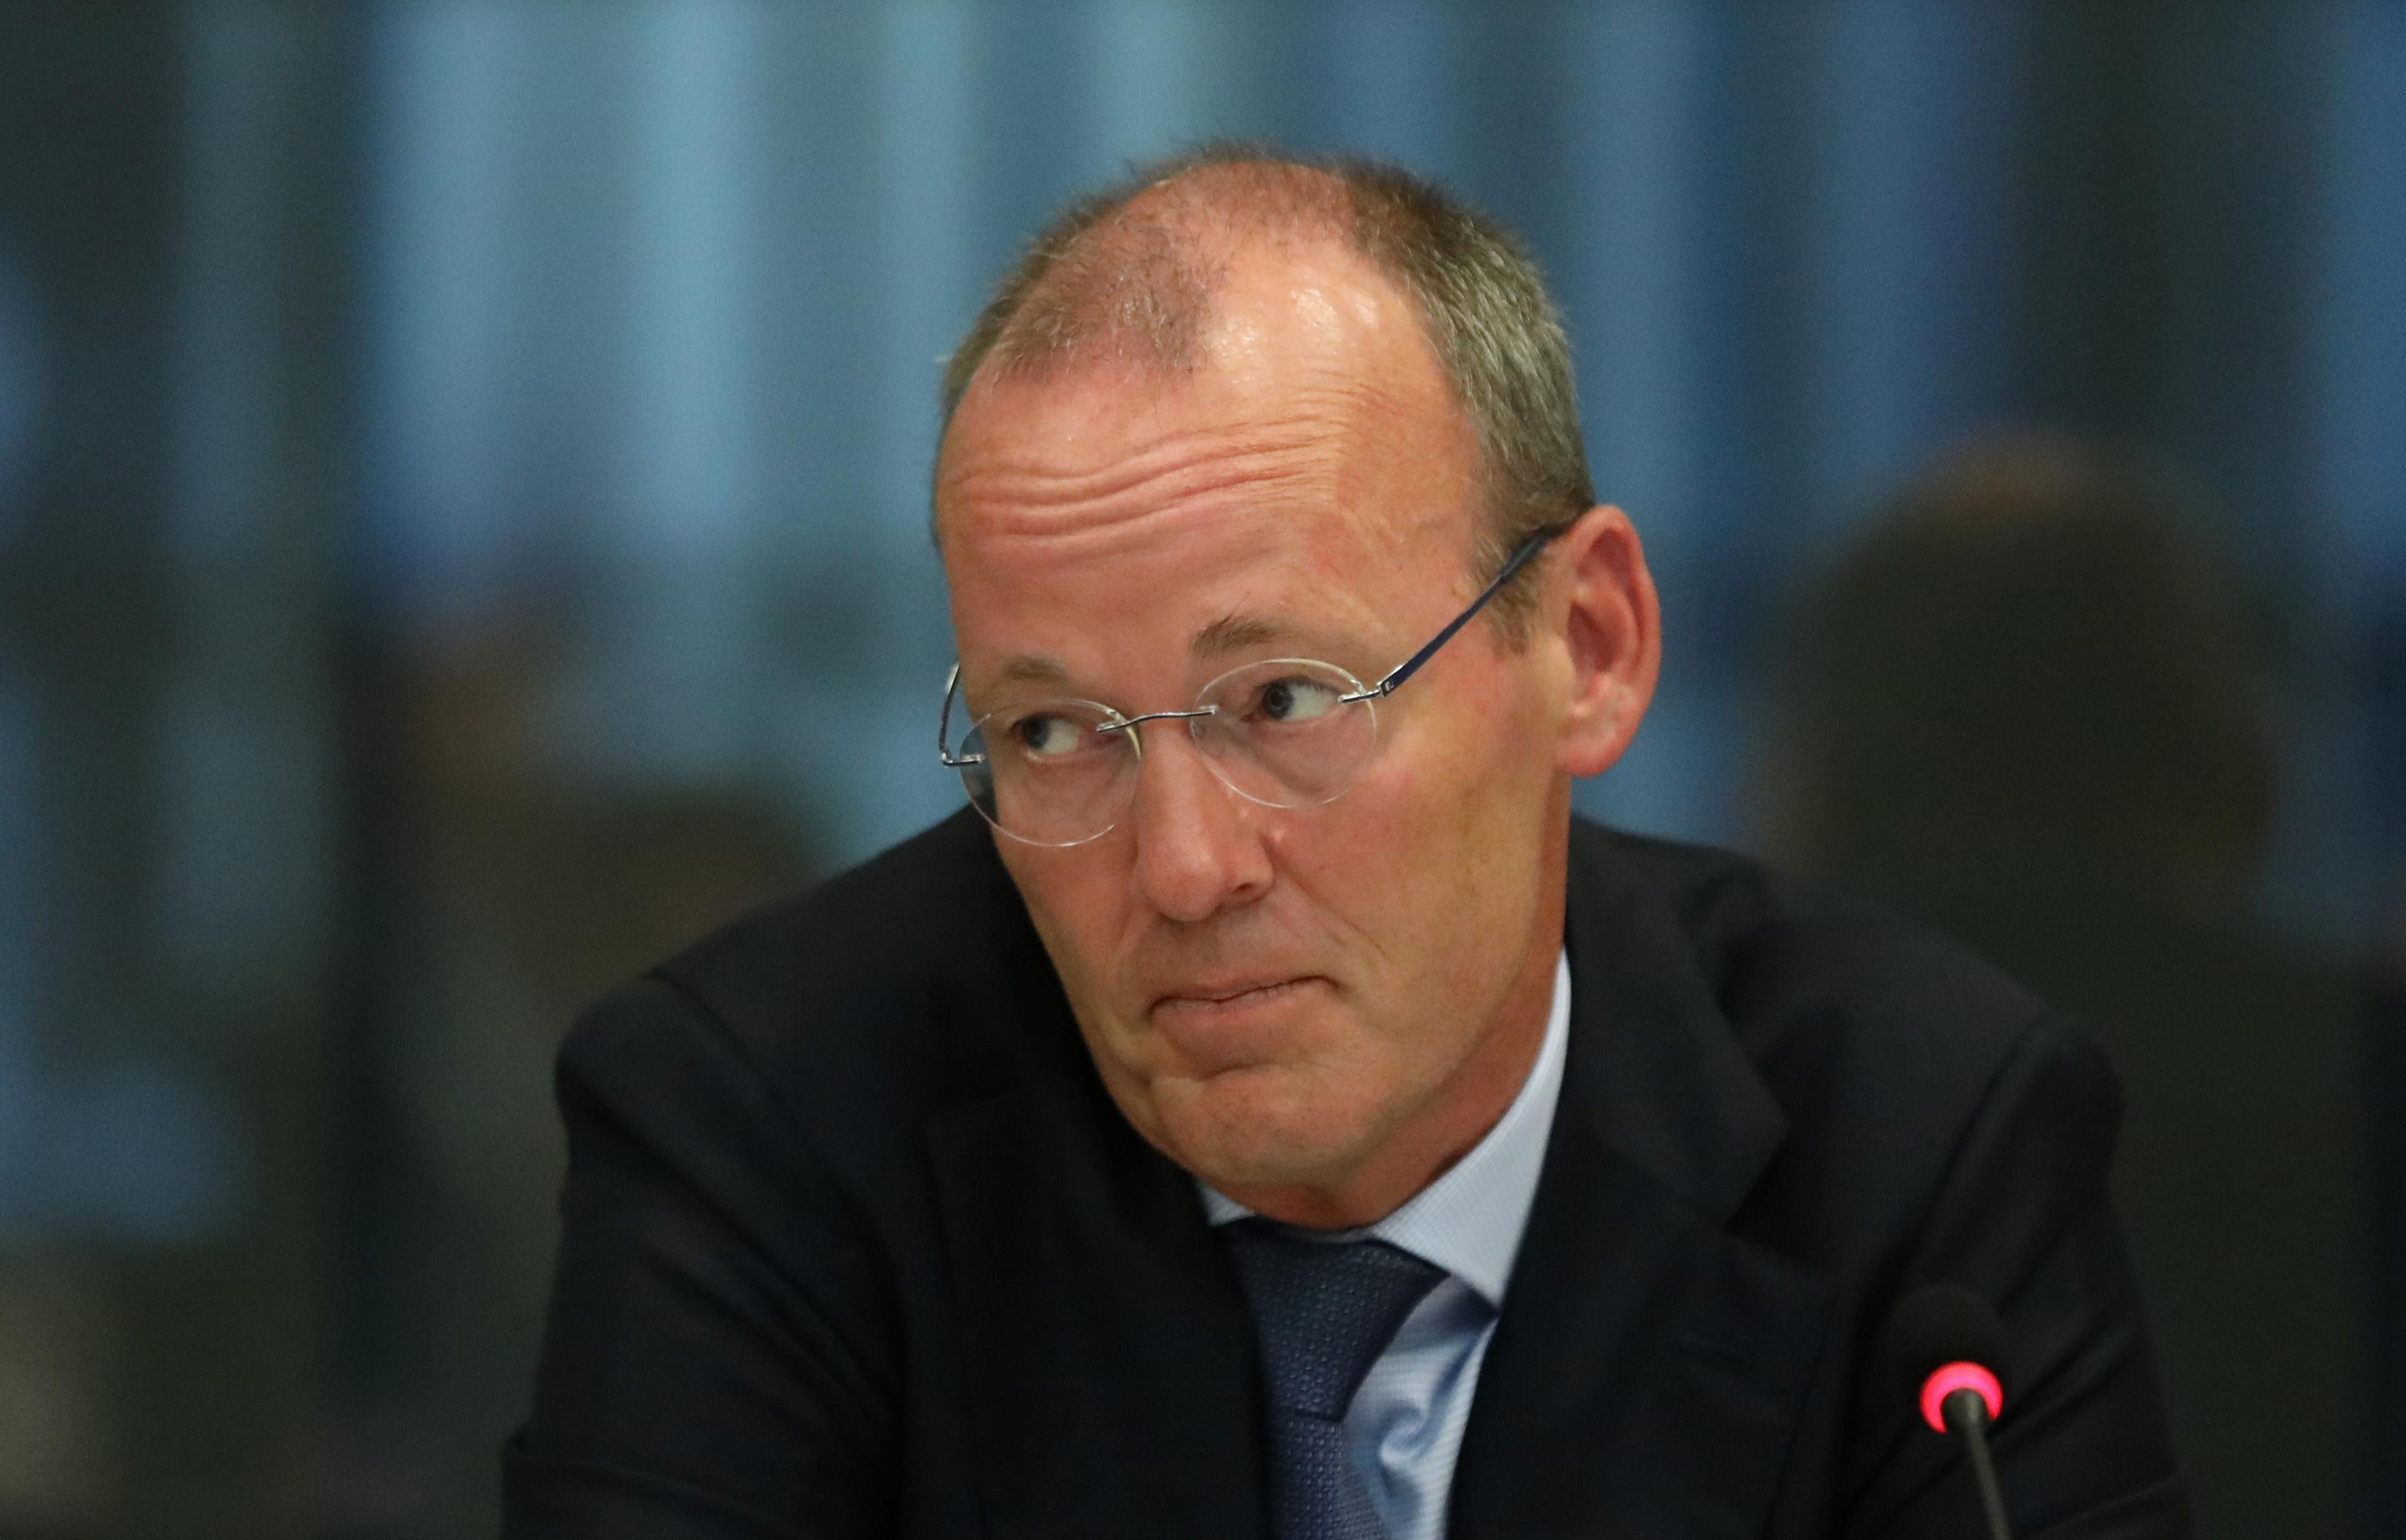 ECB's Knot wants more wiggle room around inflation target